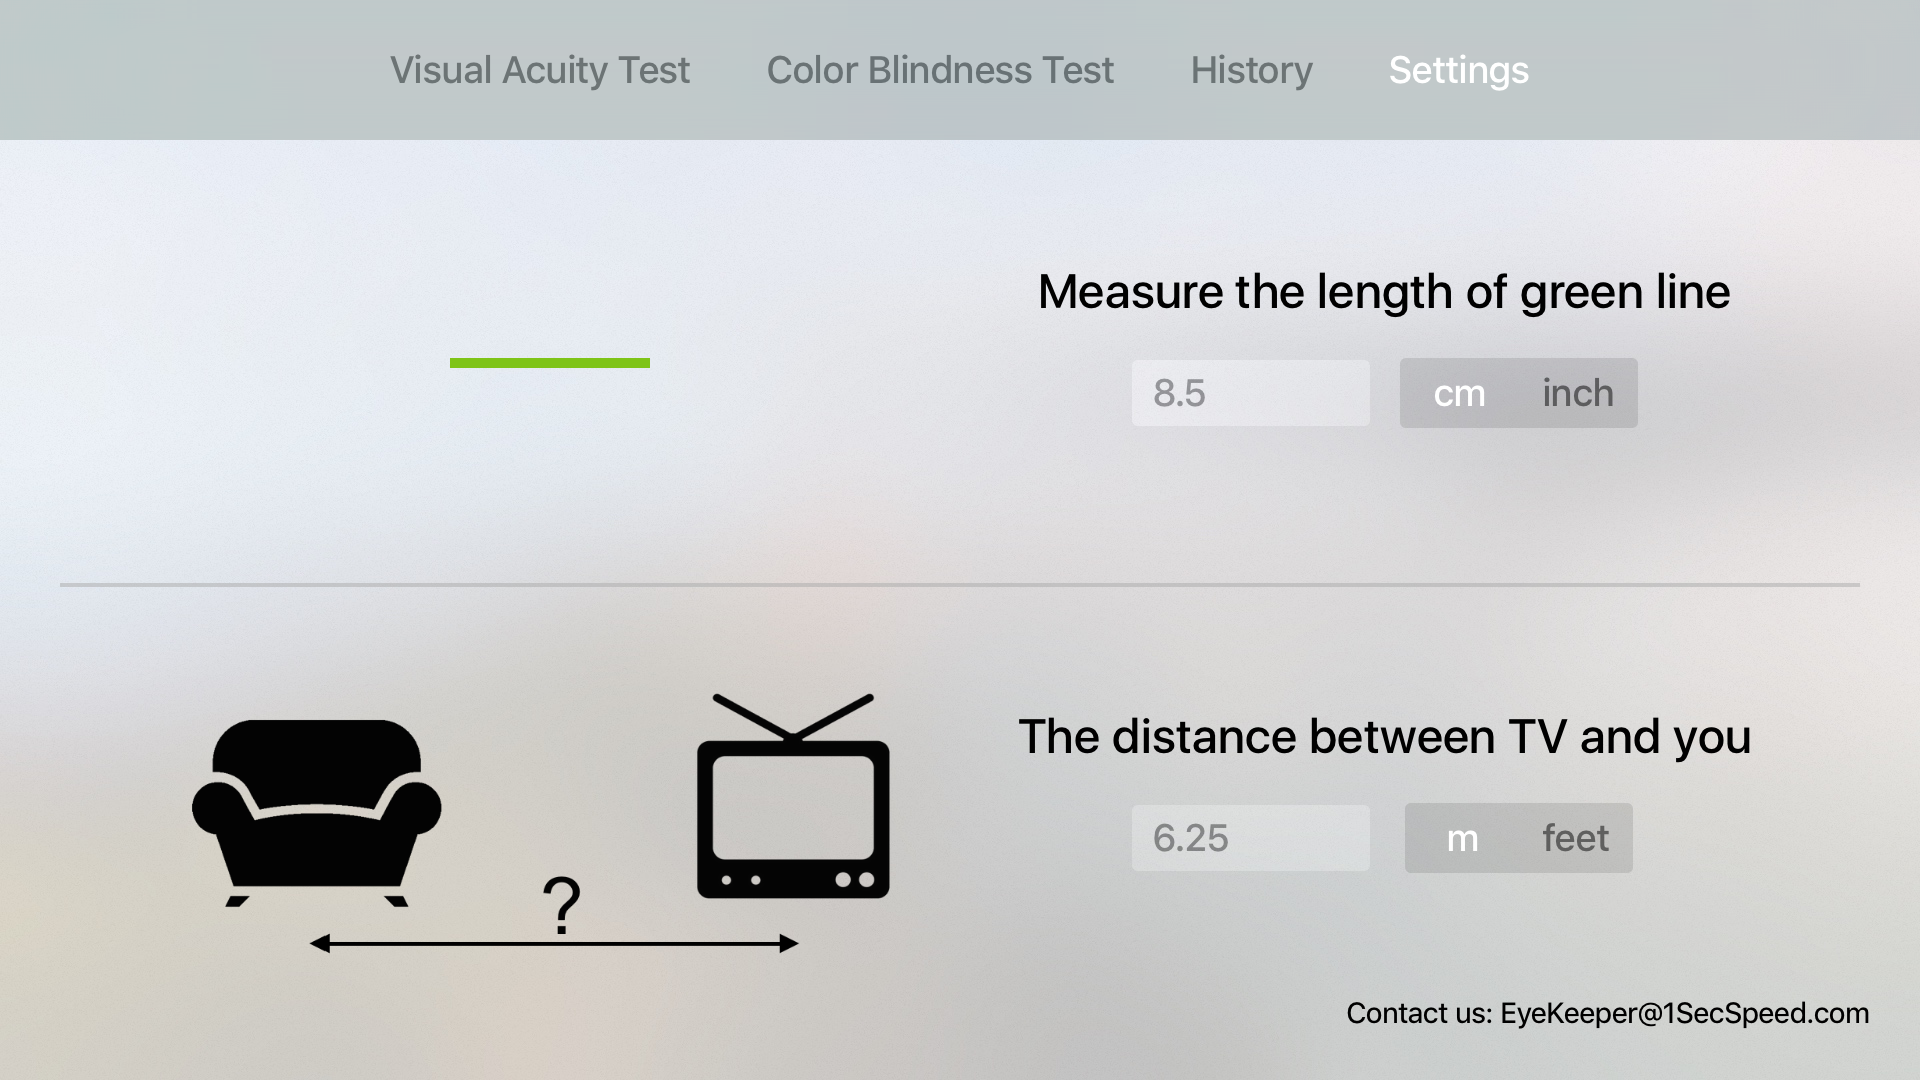 EyeKeeper - Visual Acuity Test, Color Blindness Test and Multi-Users History Tracker screenshot 5